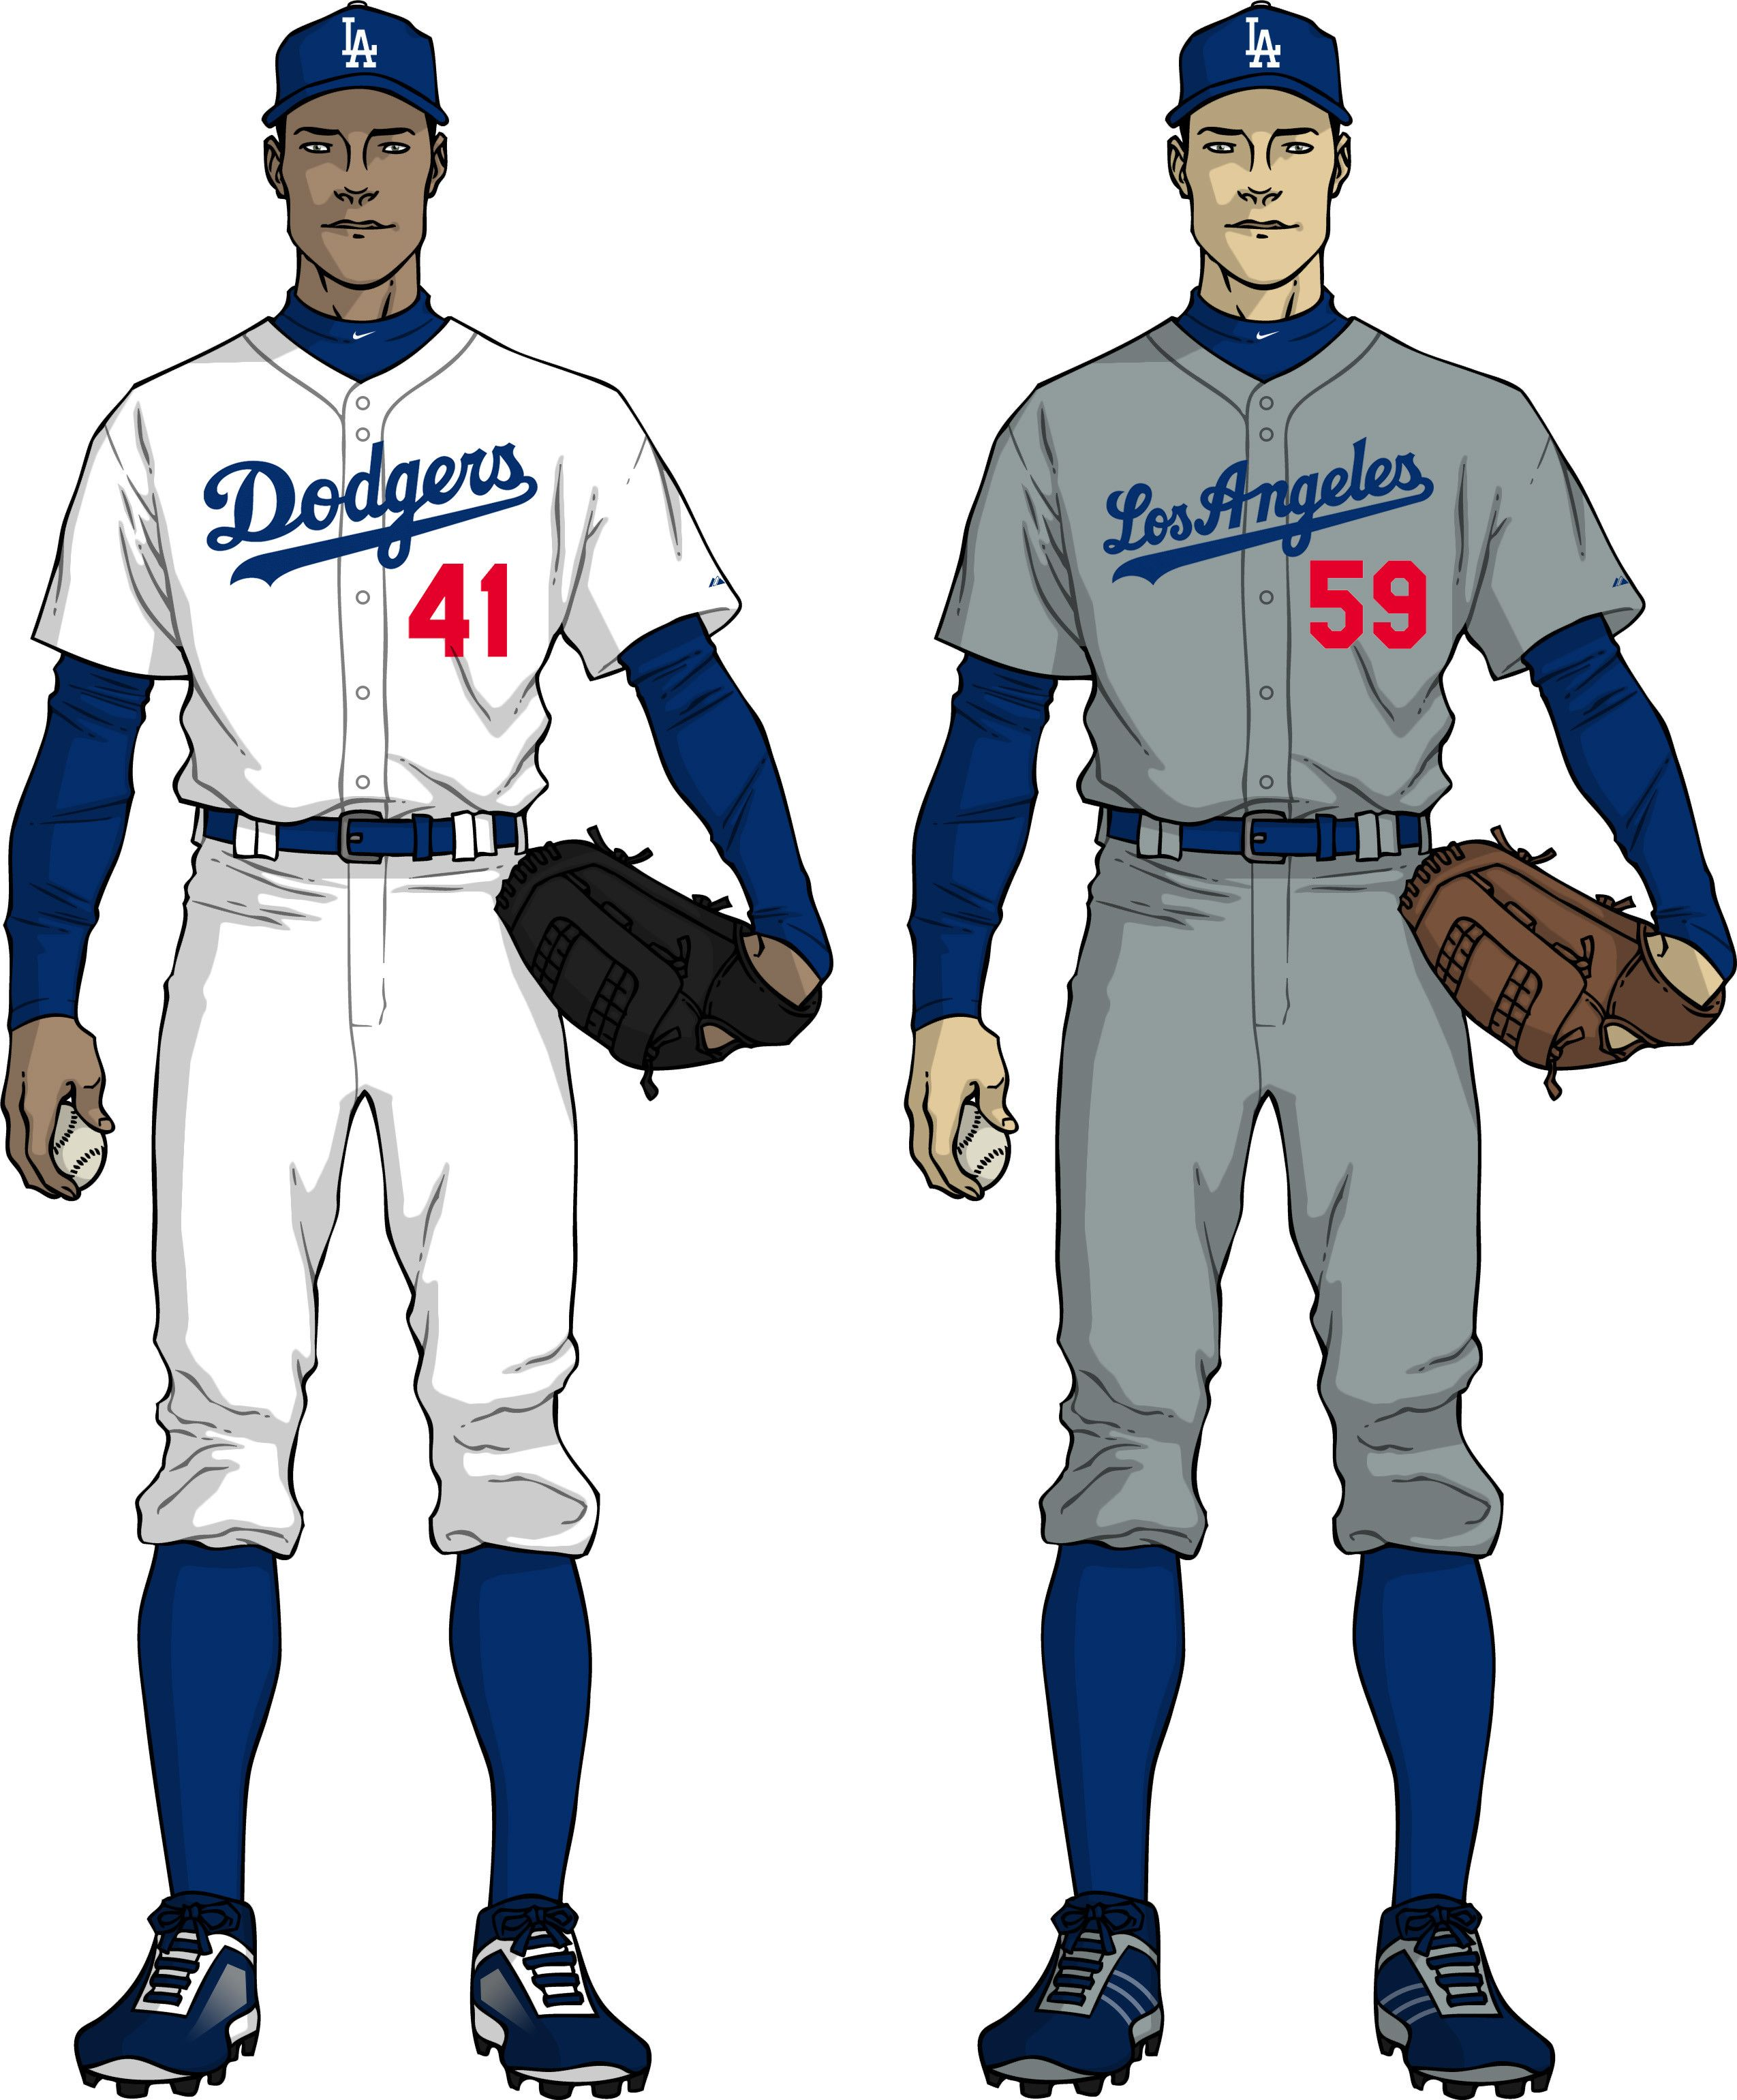 Springfield Custom Baseball Uniforms For This Season Finding the right look  for… b7b58884a